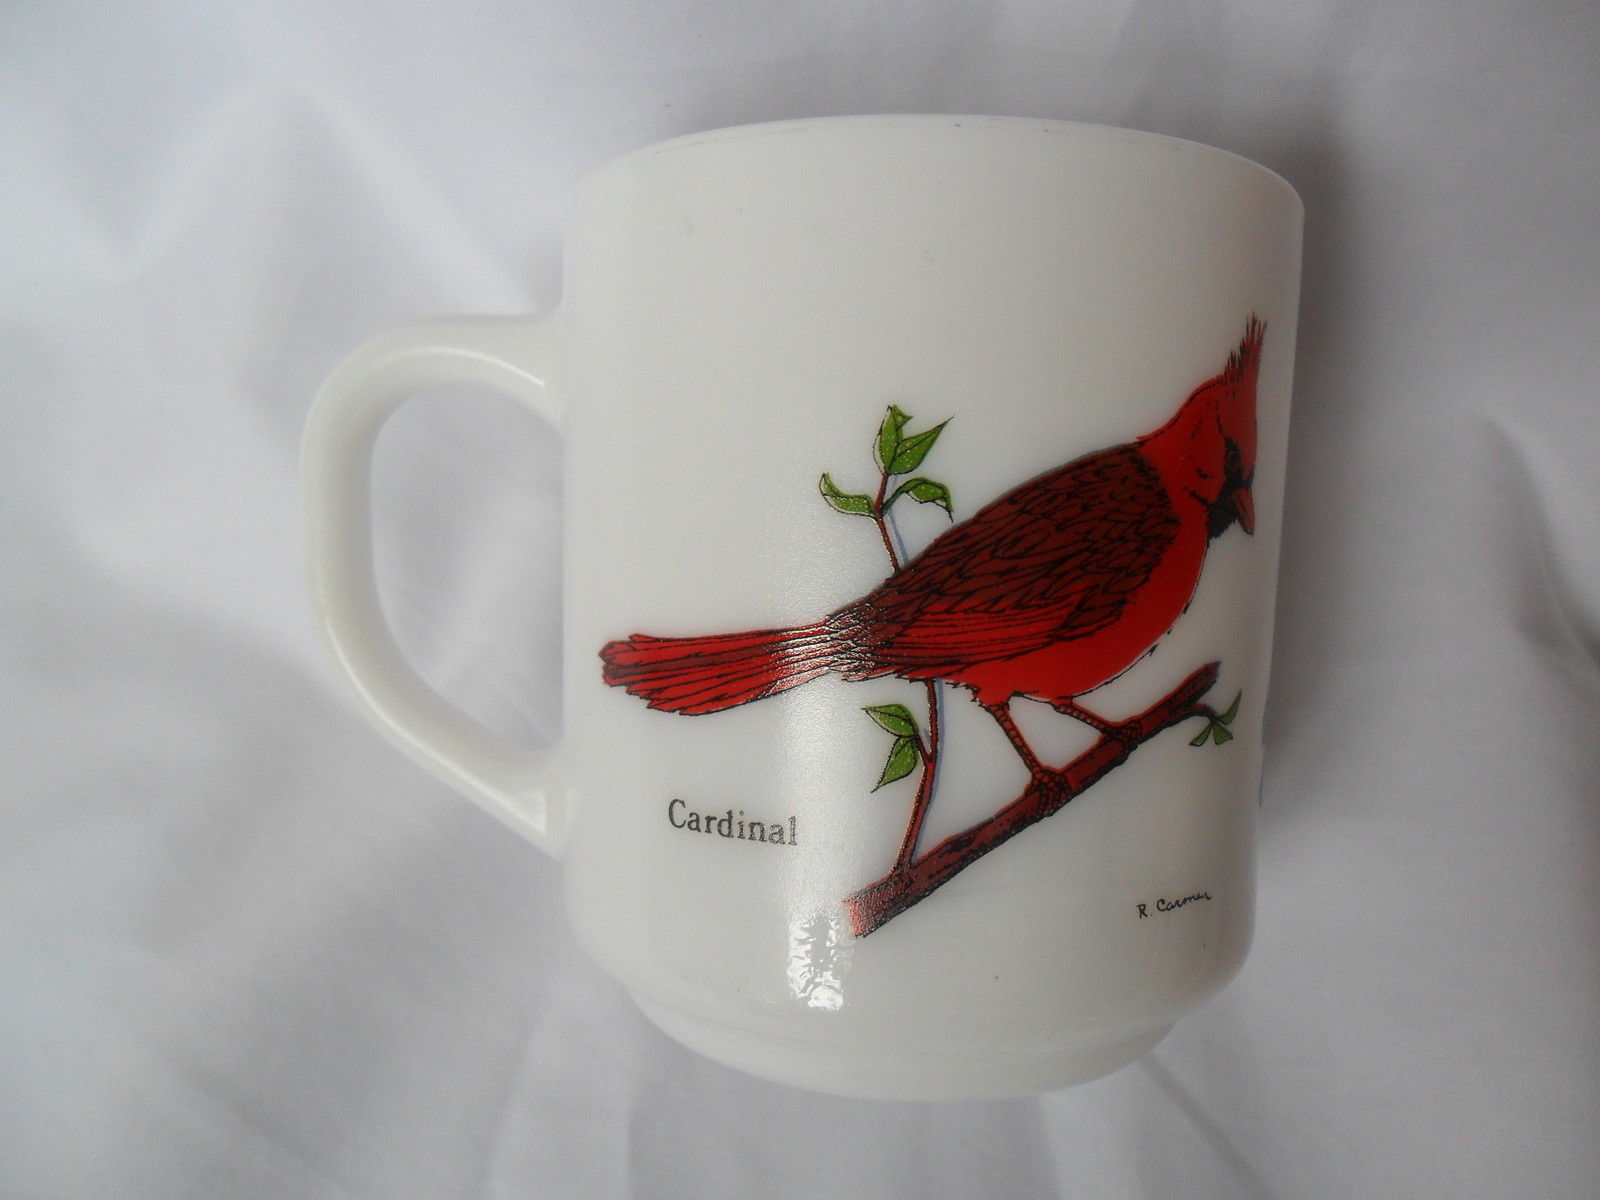 Vintage Milk Glass Coffee/Tea Cup-Mug France with Birds Cardinal, Blue Jay